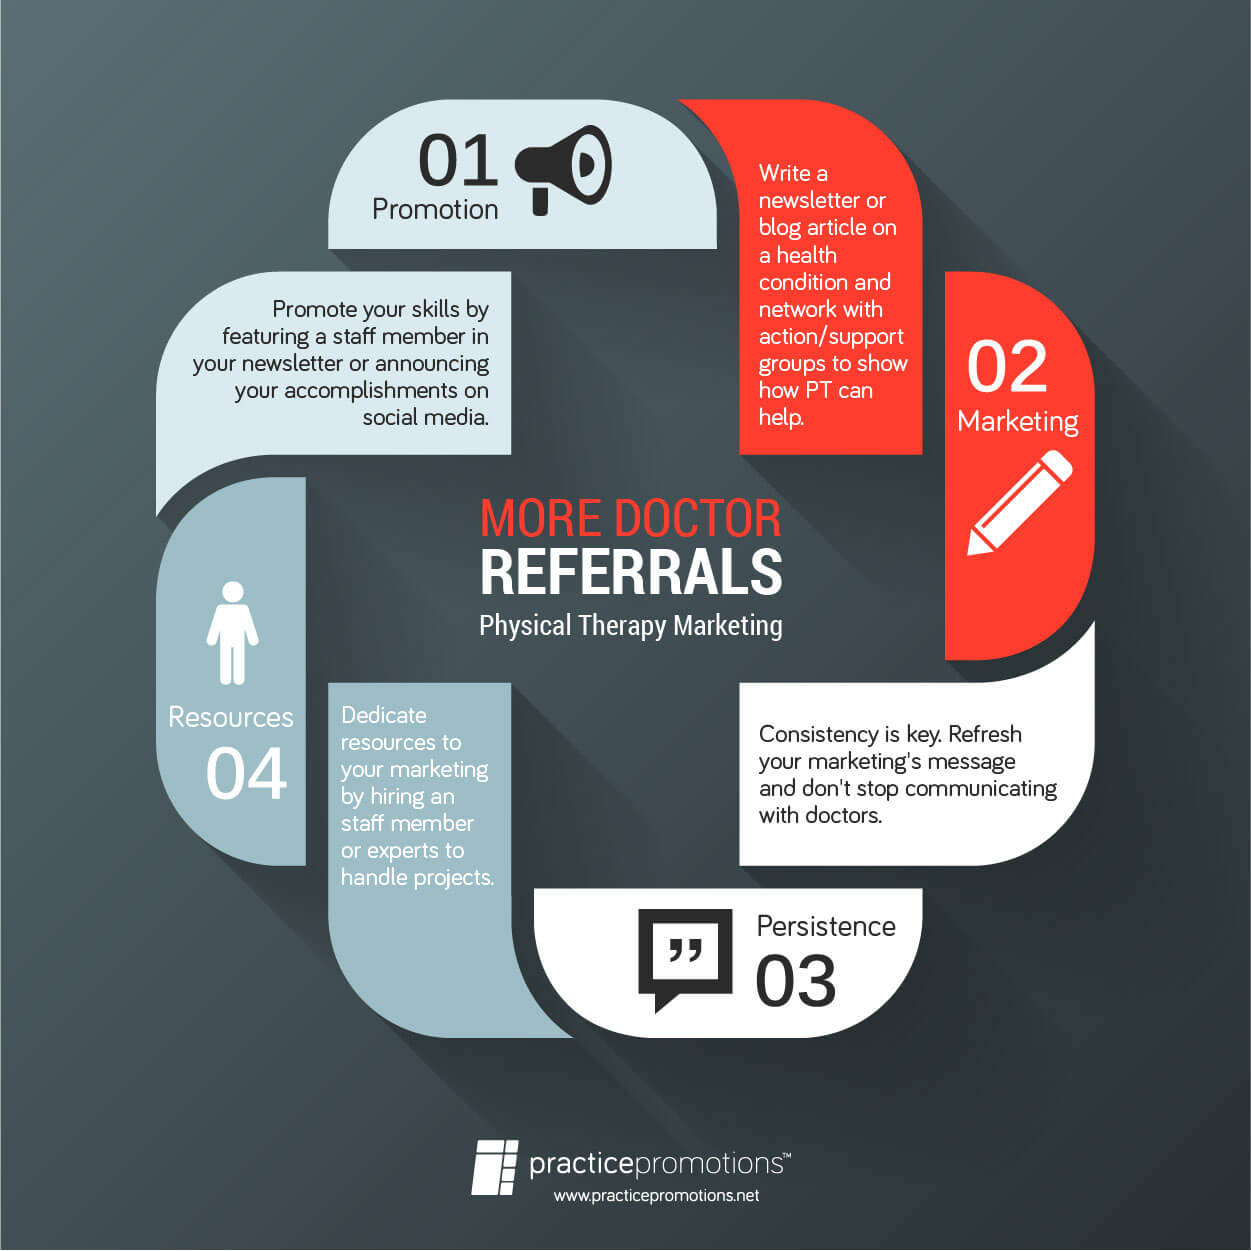 More Doctor Referrals with PT Marketing